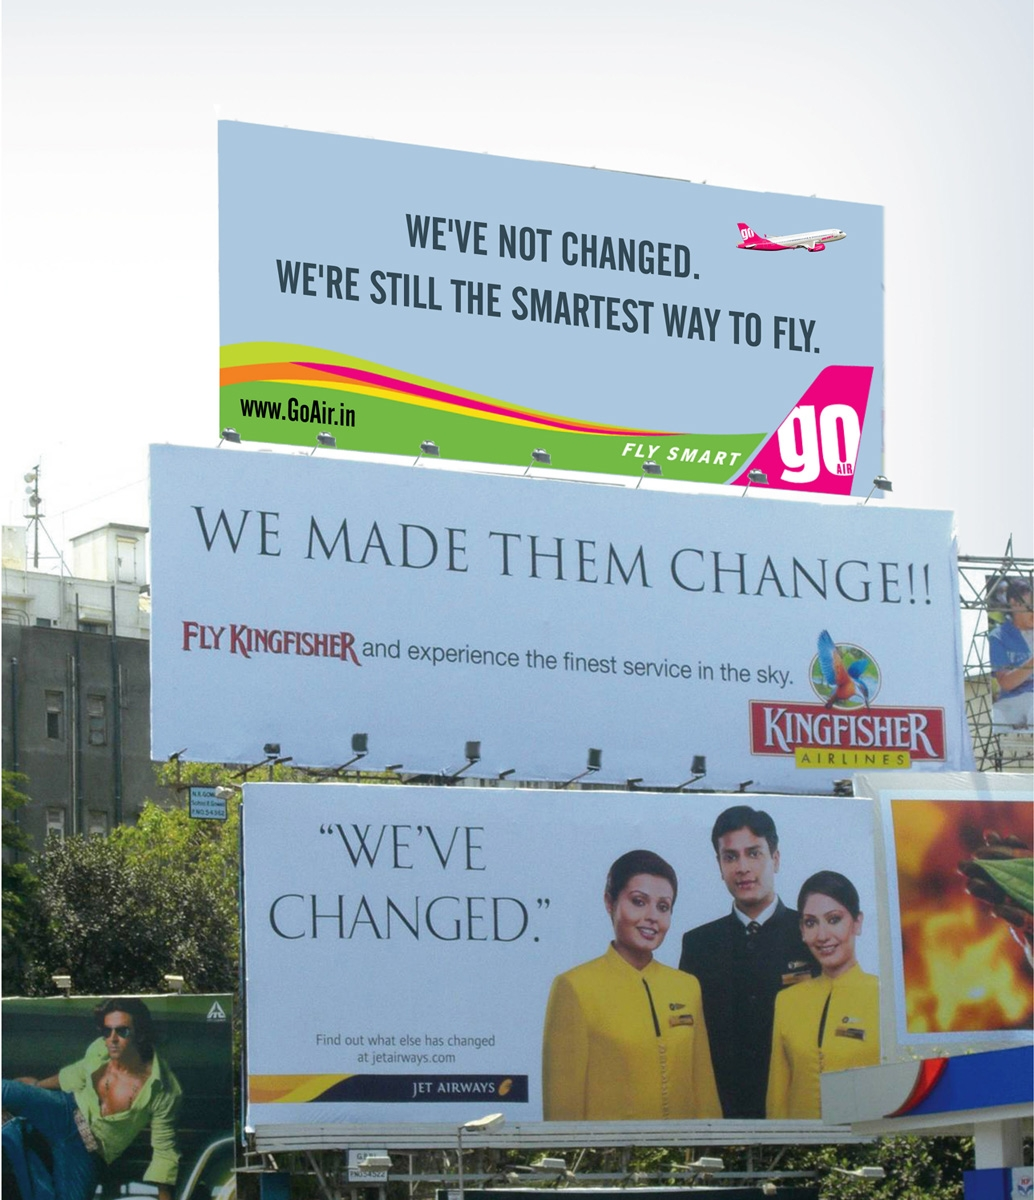 Jet Airways we have changed - Kingfisher we made them change - GoAir we have not changed we are still the smartest way to fly